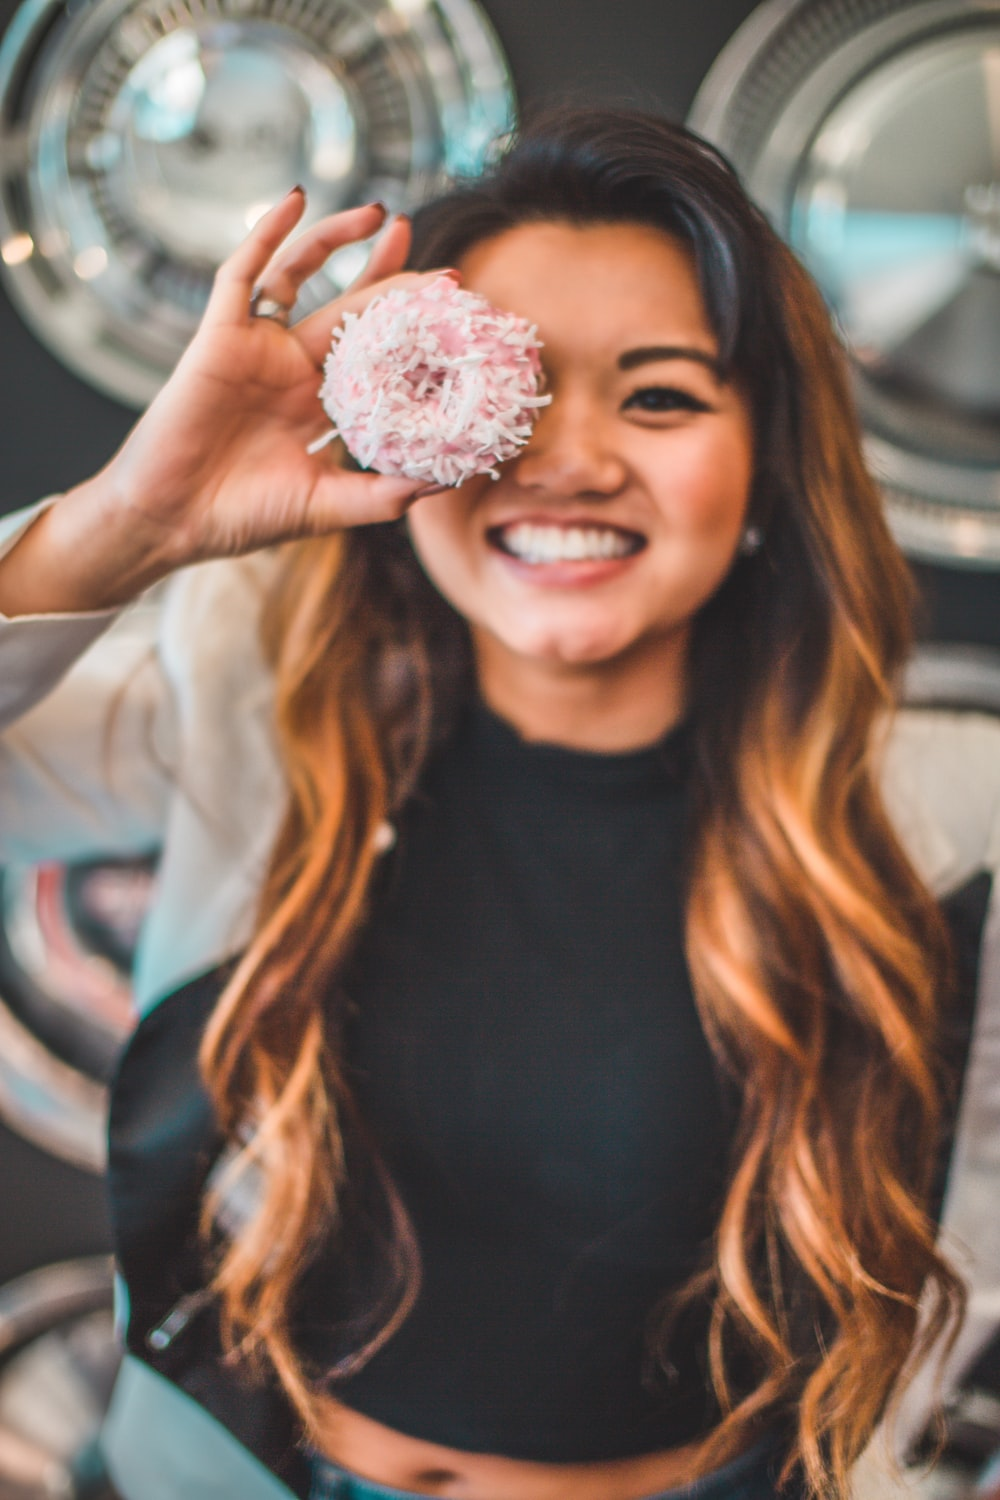 woman holding round strawberry pastry